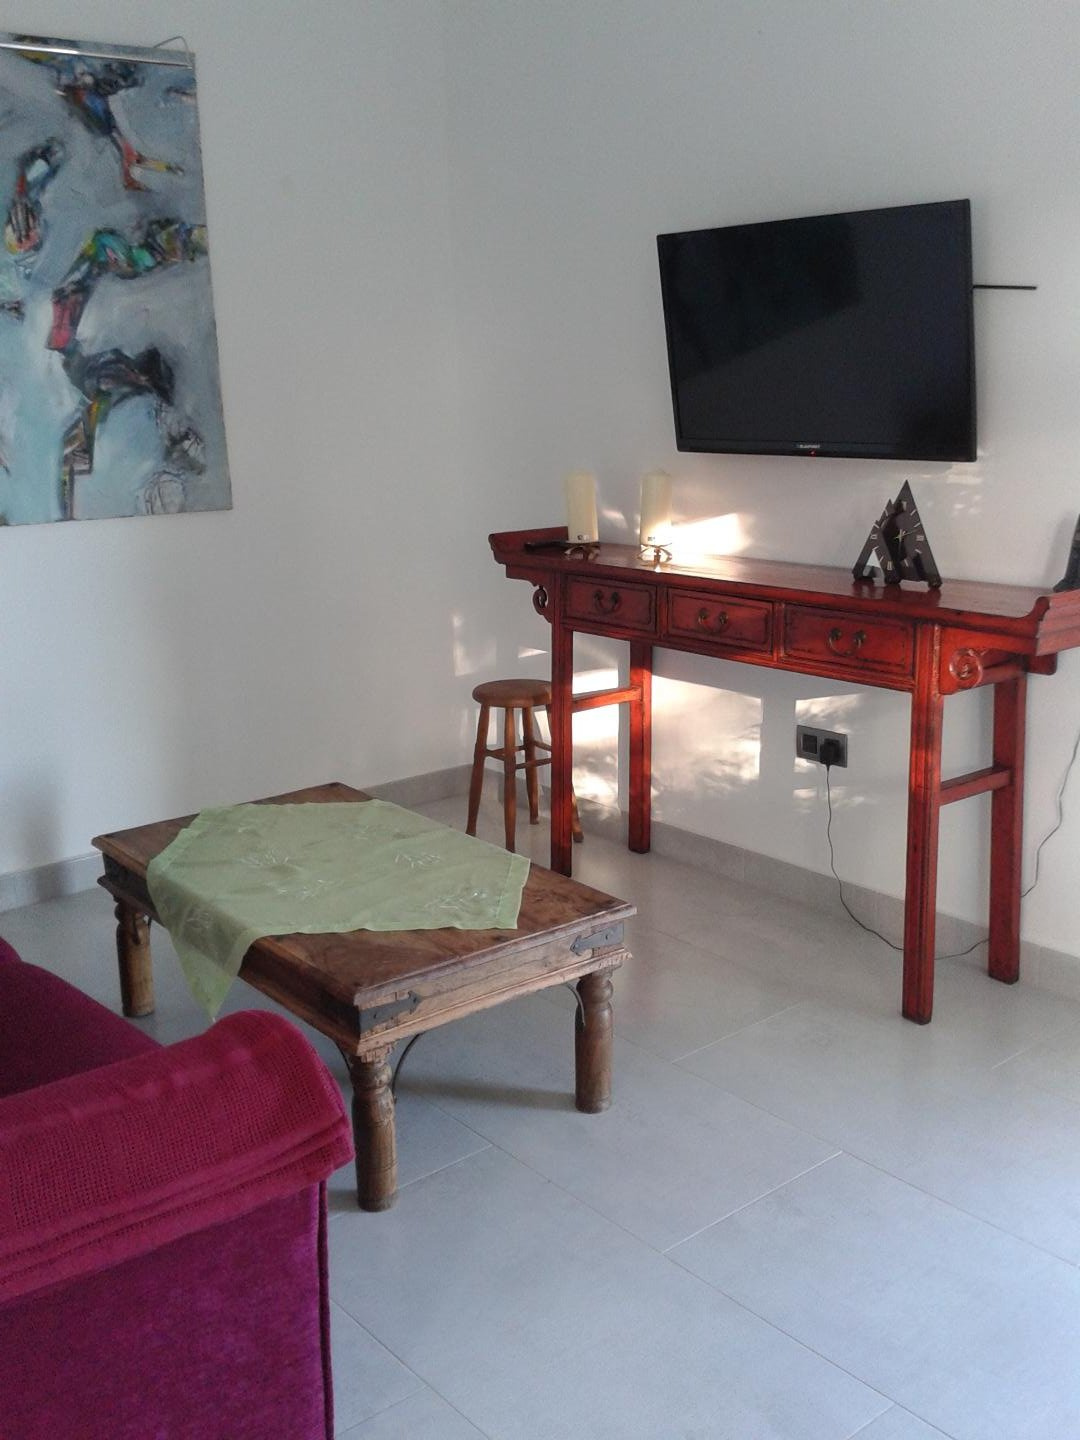 Finca Las Damas in Playa San Juan: Apartment situated at an ecologic banana farm